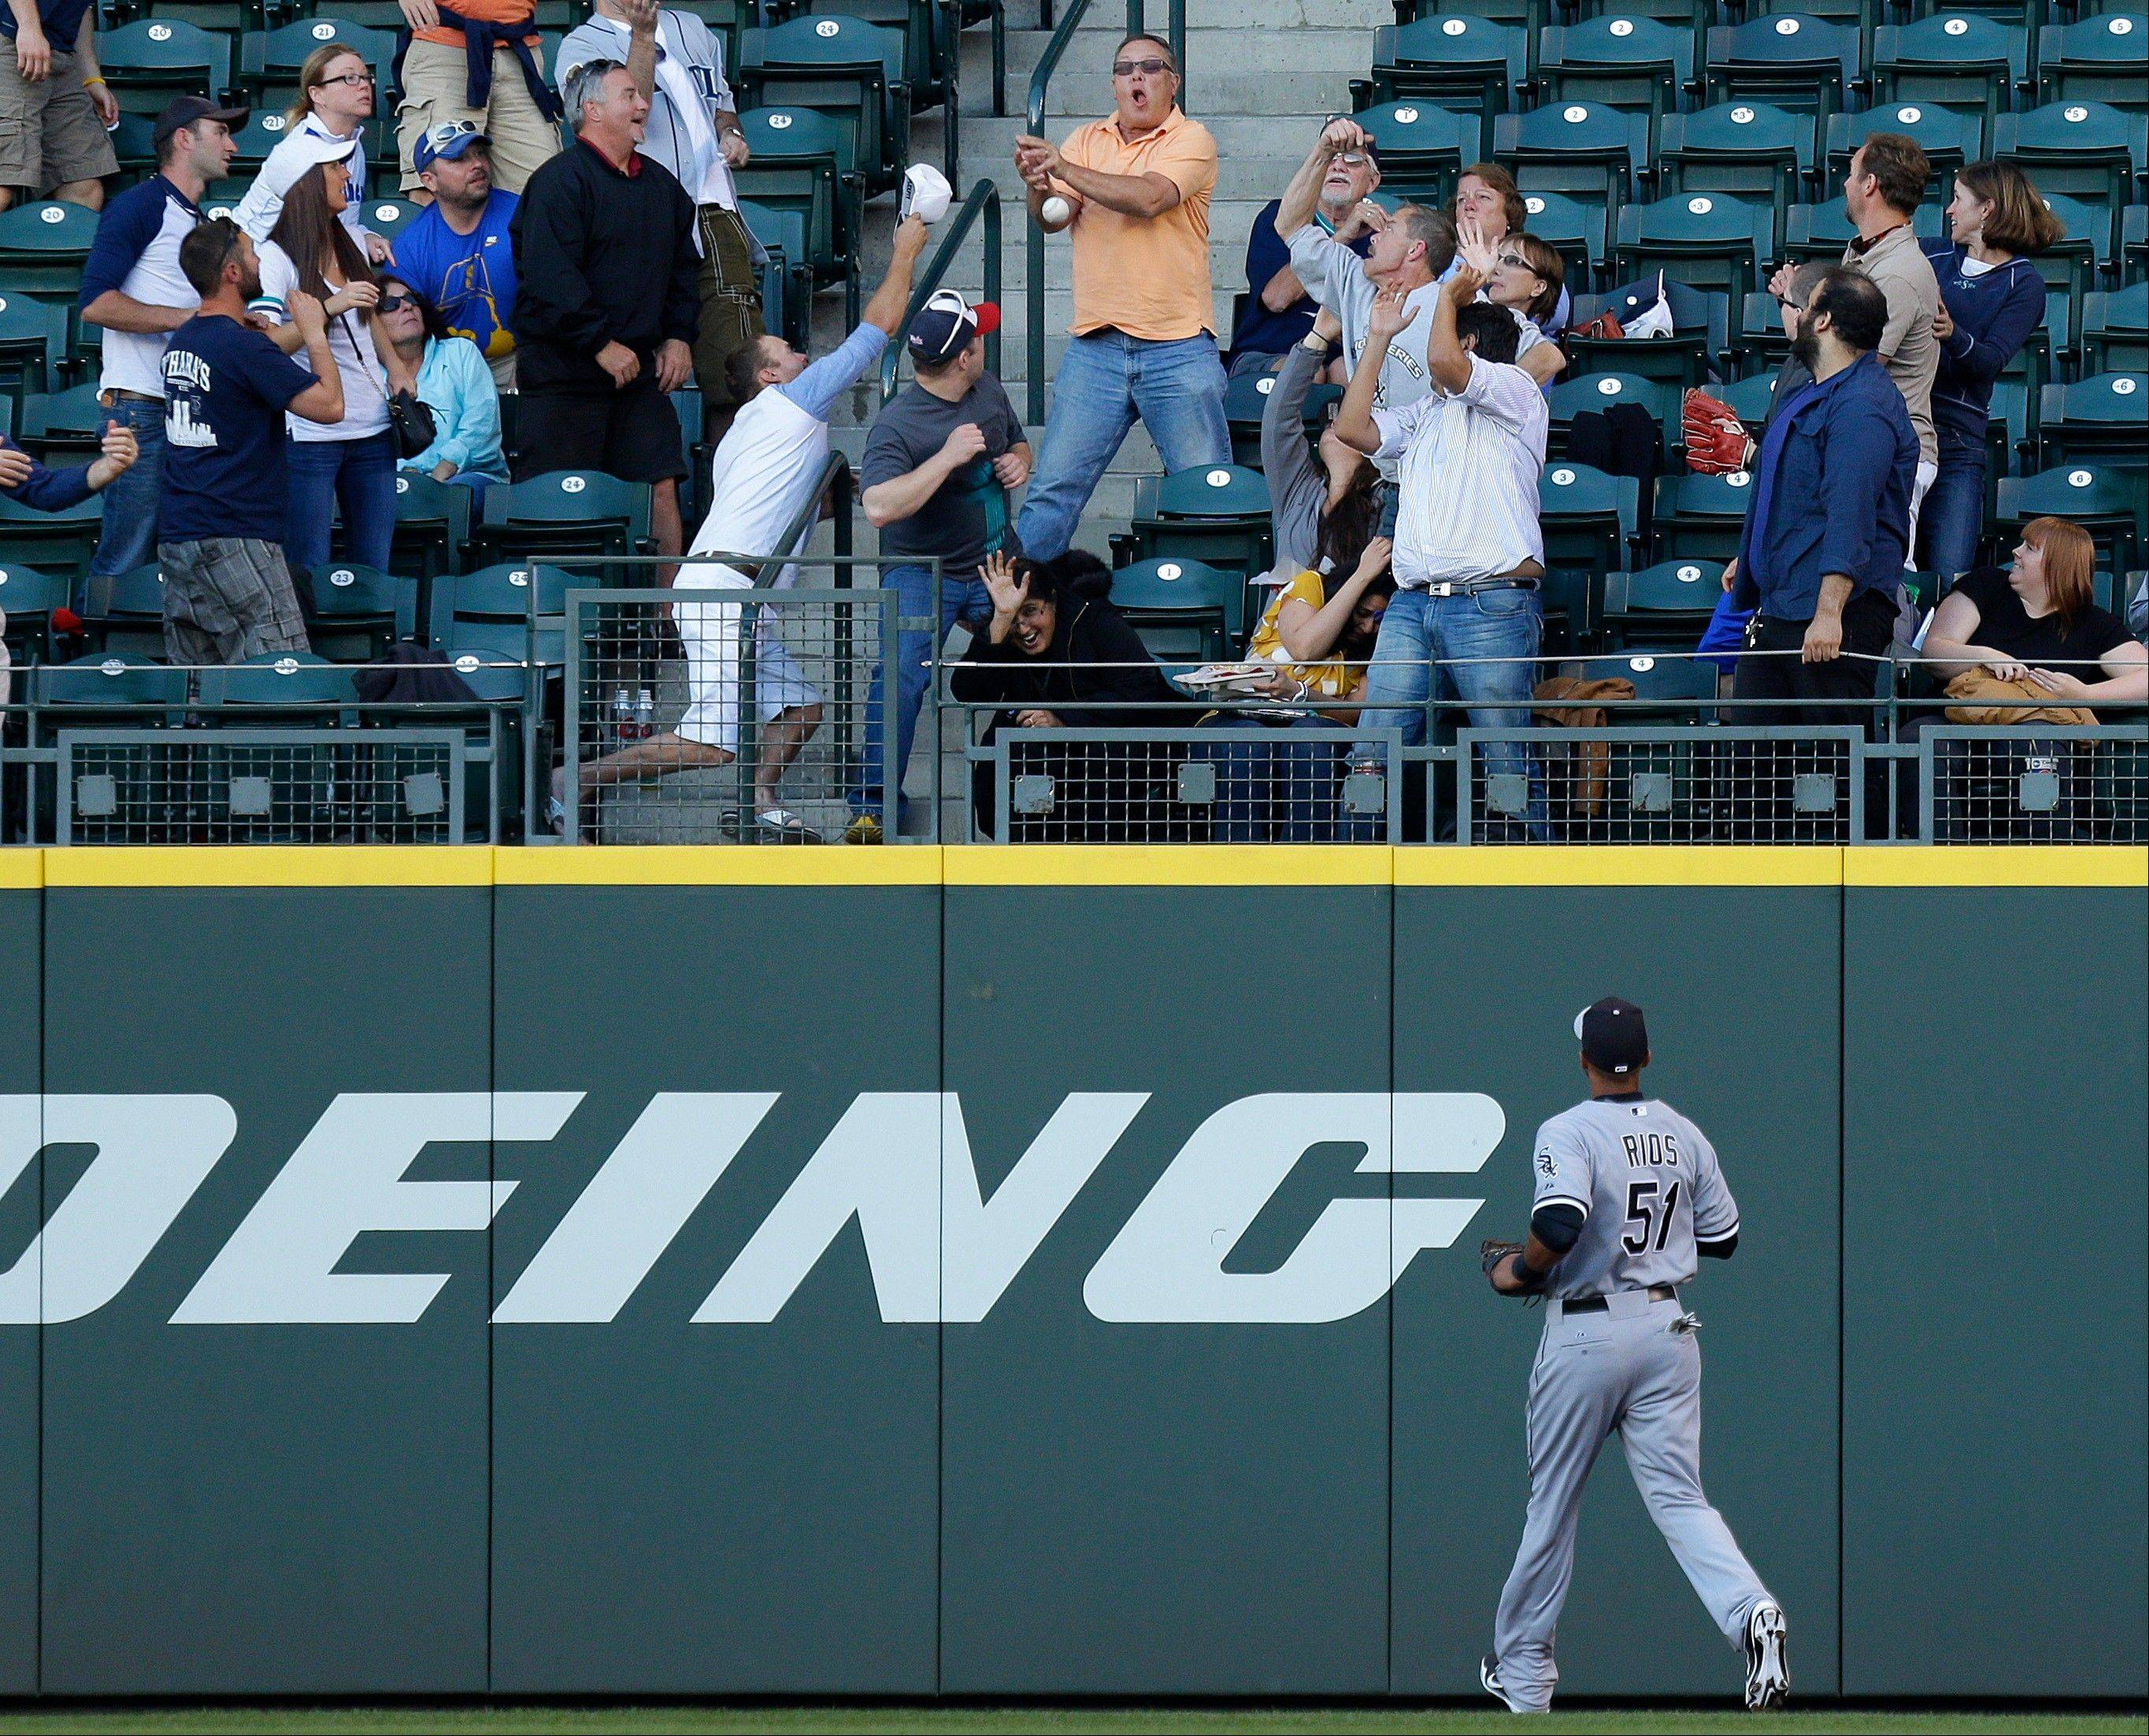 White Sox right fielder Alex Rios can only watch as fans attempt to catch a two-run home run hit by Seattle Mariners' Raul Ibanez in the third inning of a baseball game, Monday, June 3, 2013, in Seattle.